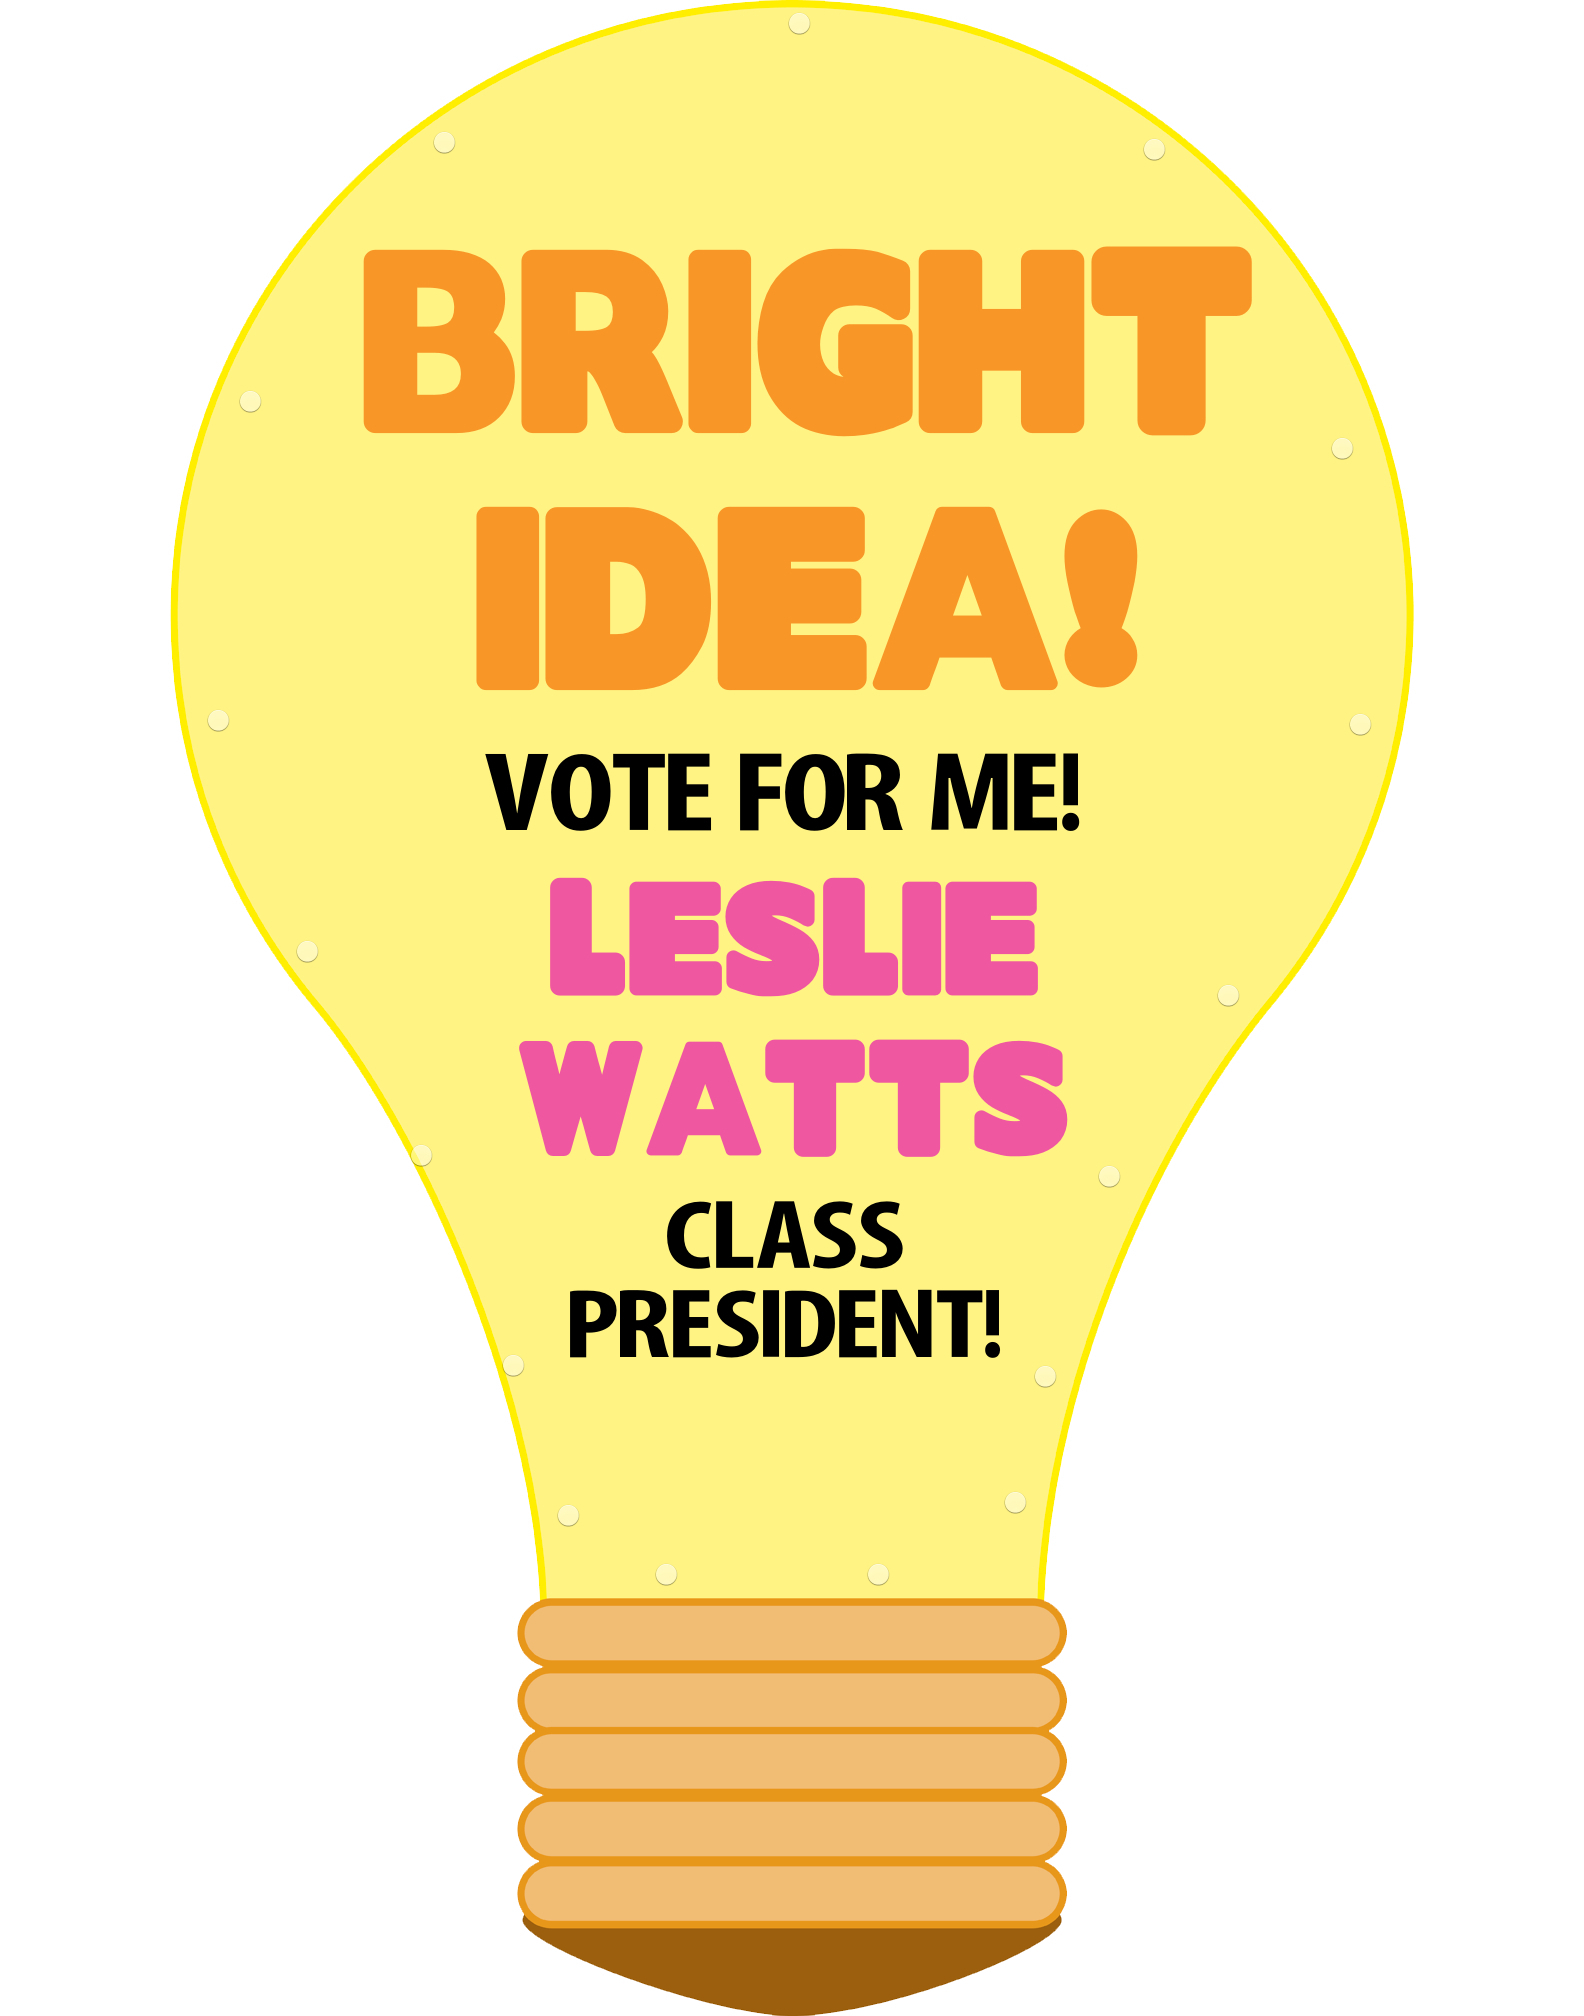 Make an election poster class president sign school council poster